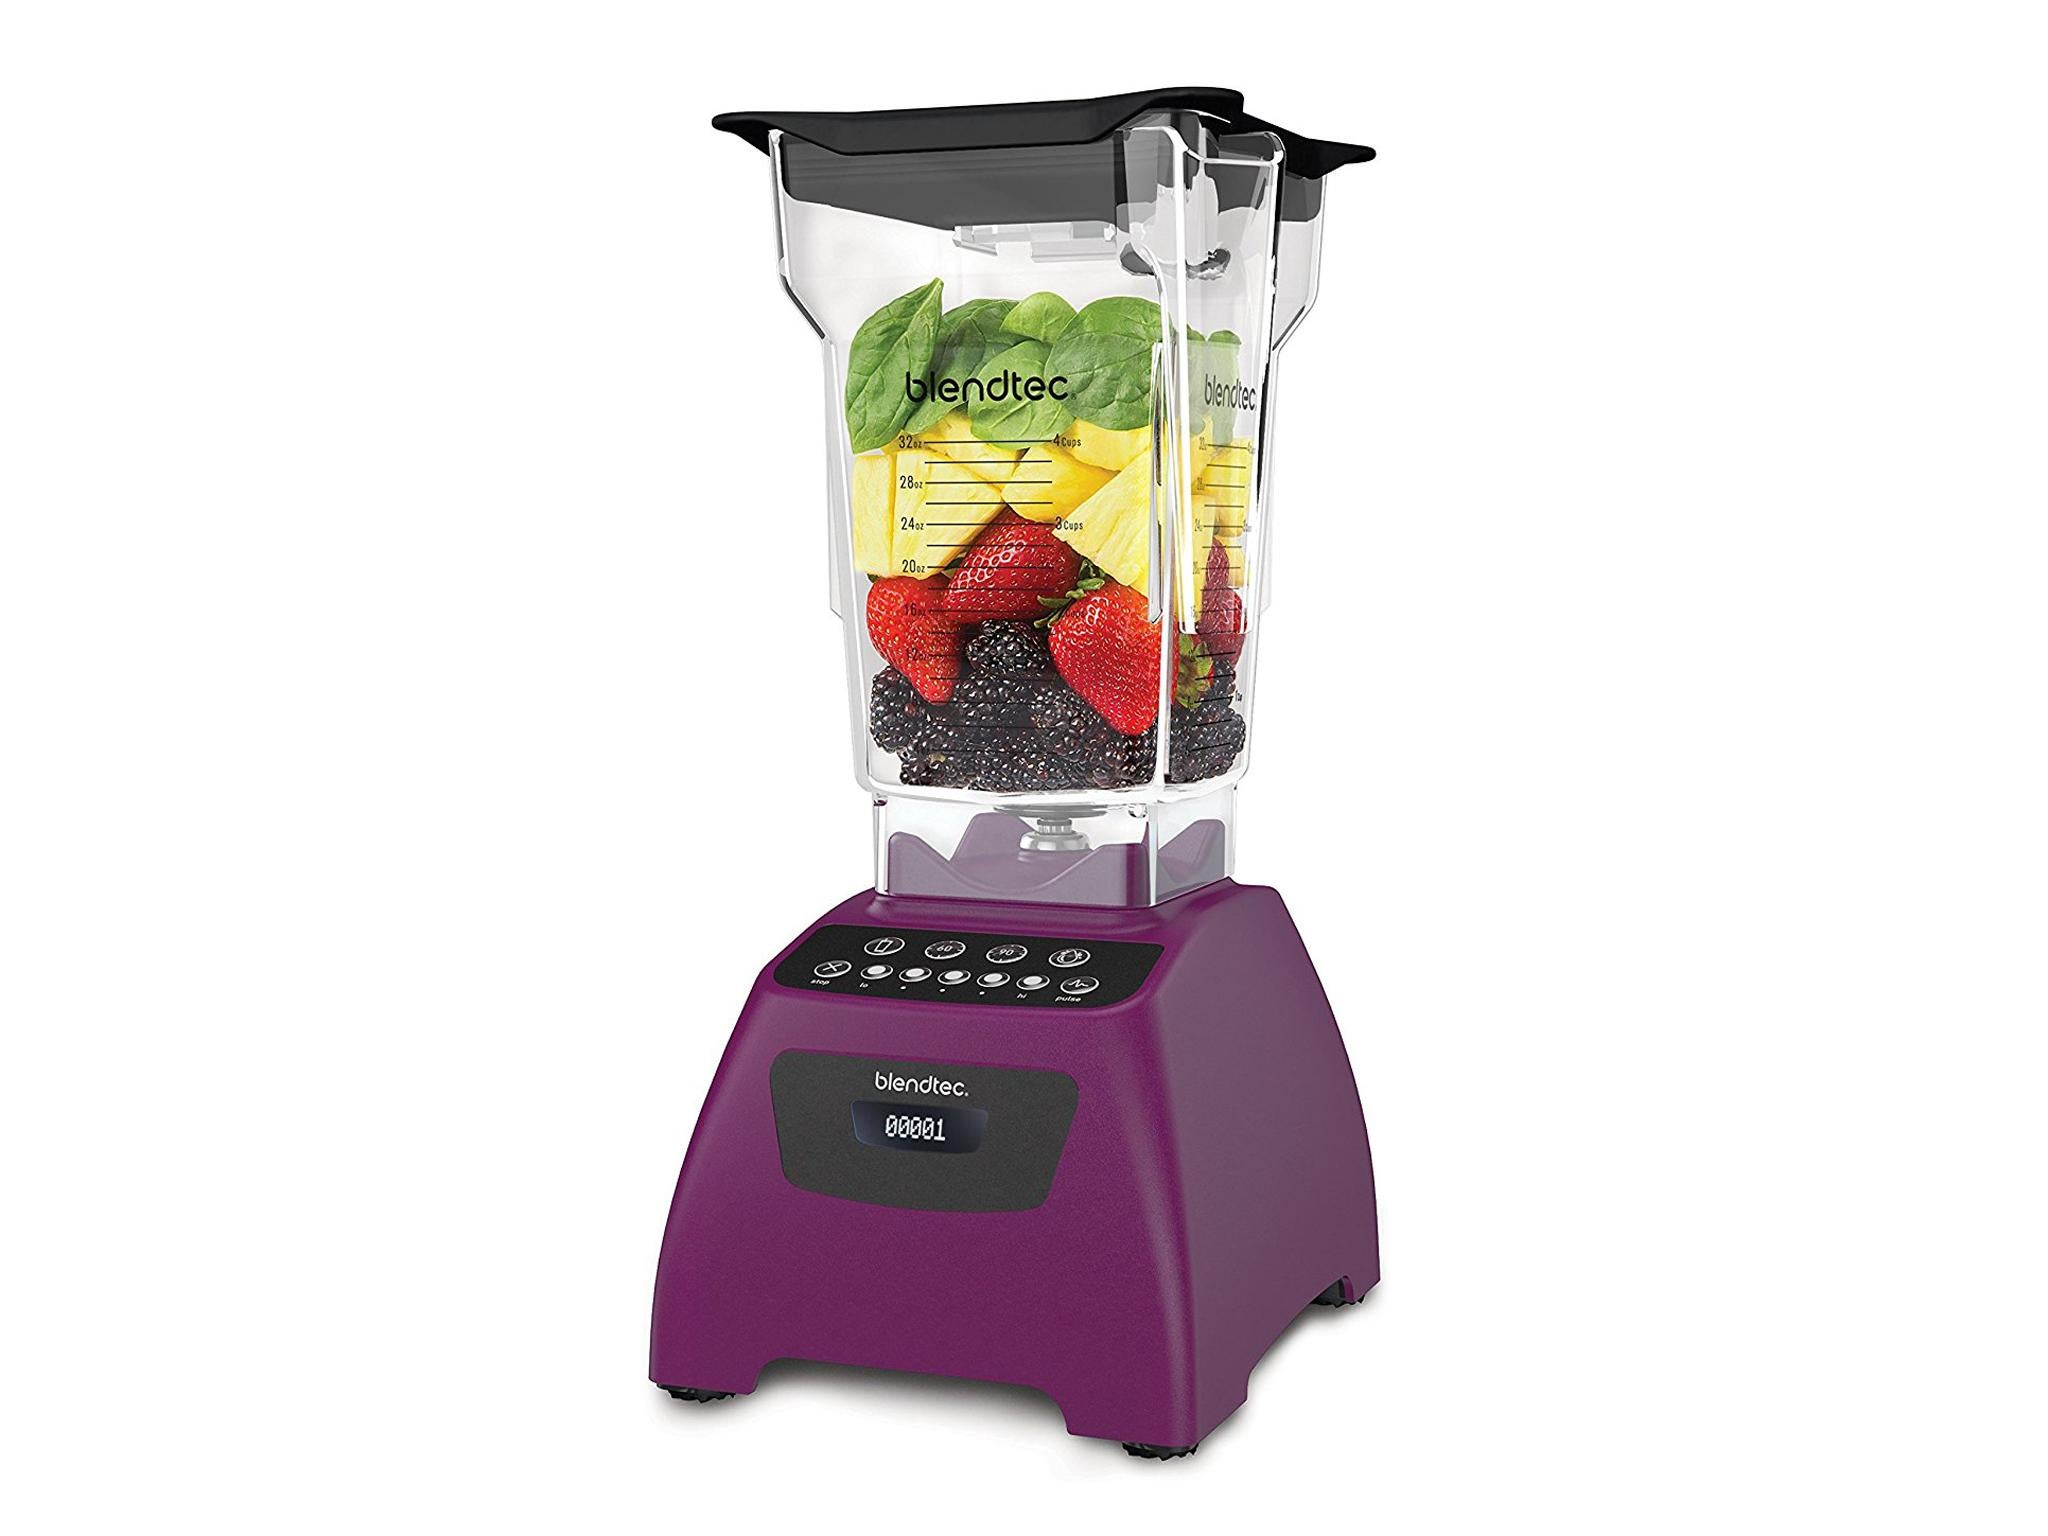 Blendtec Classic 757 High Speed Blender: £399, Amazon